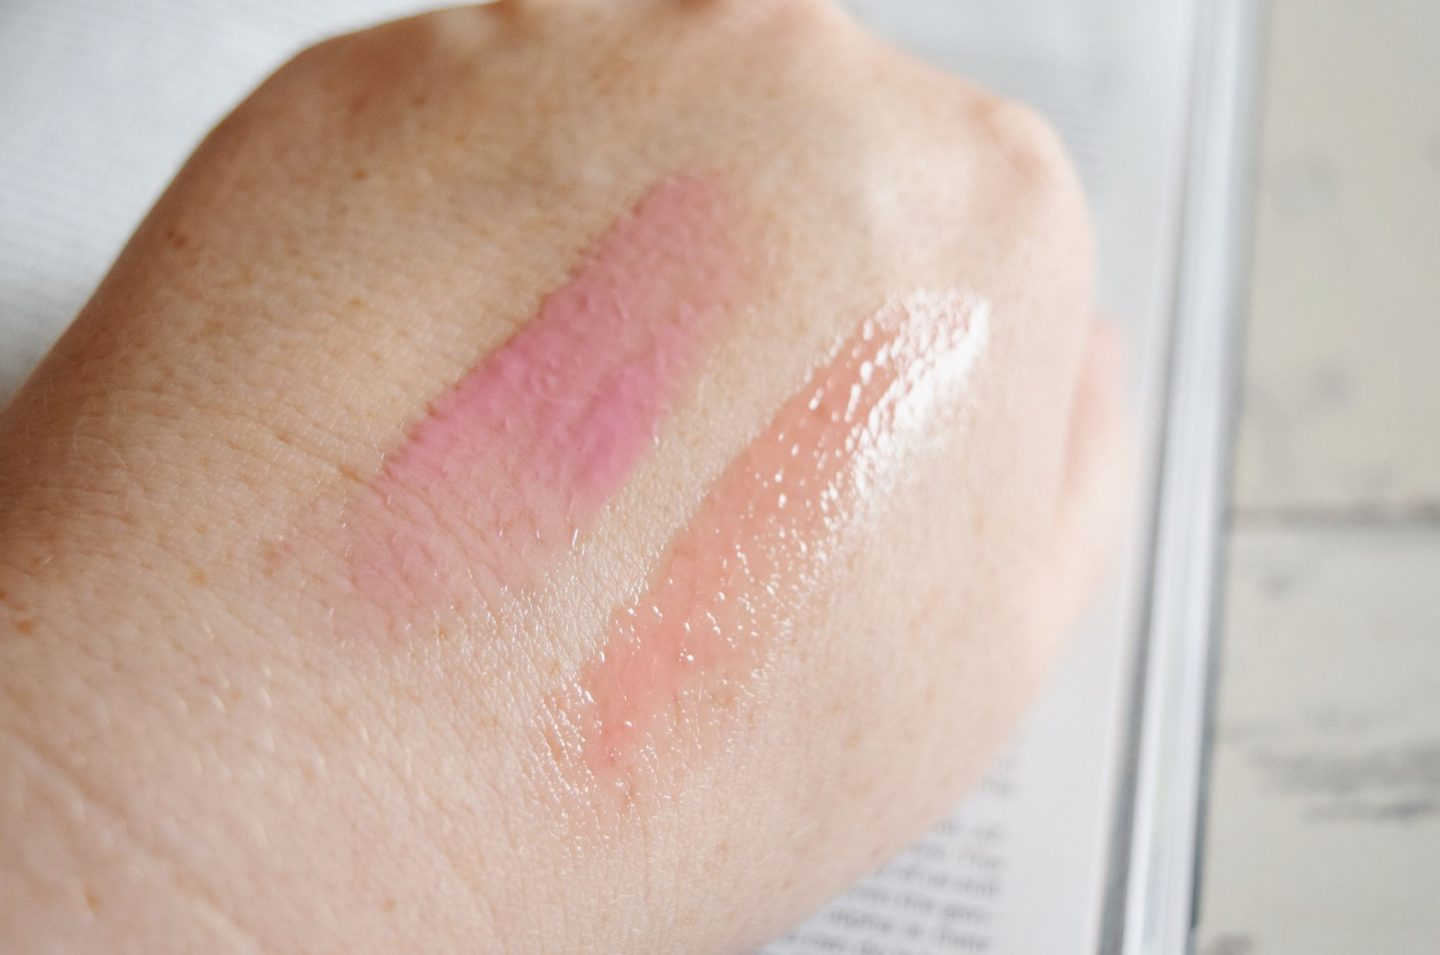 GlamGlow Pout Mud Wet Lip Balm Treatment swatches